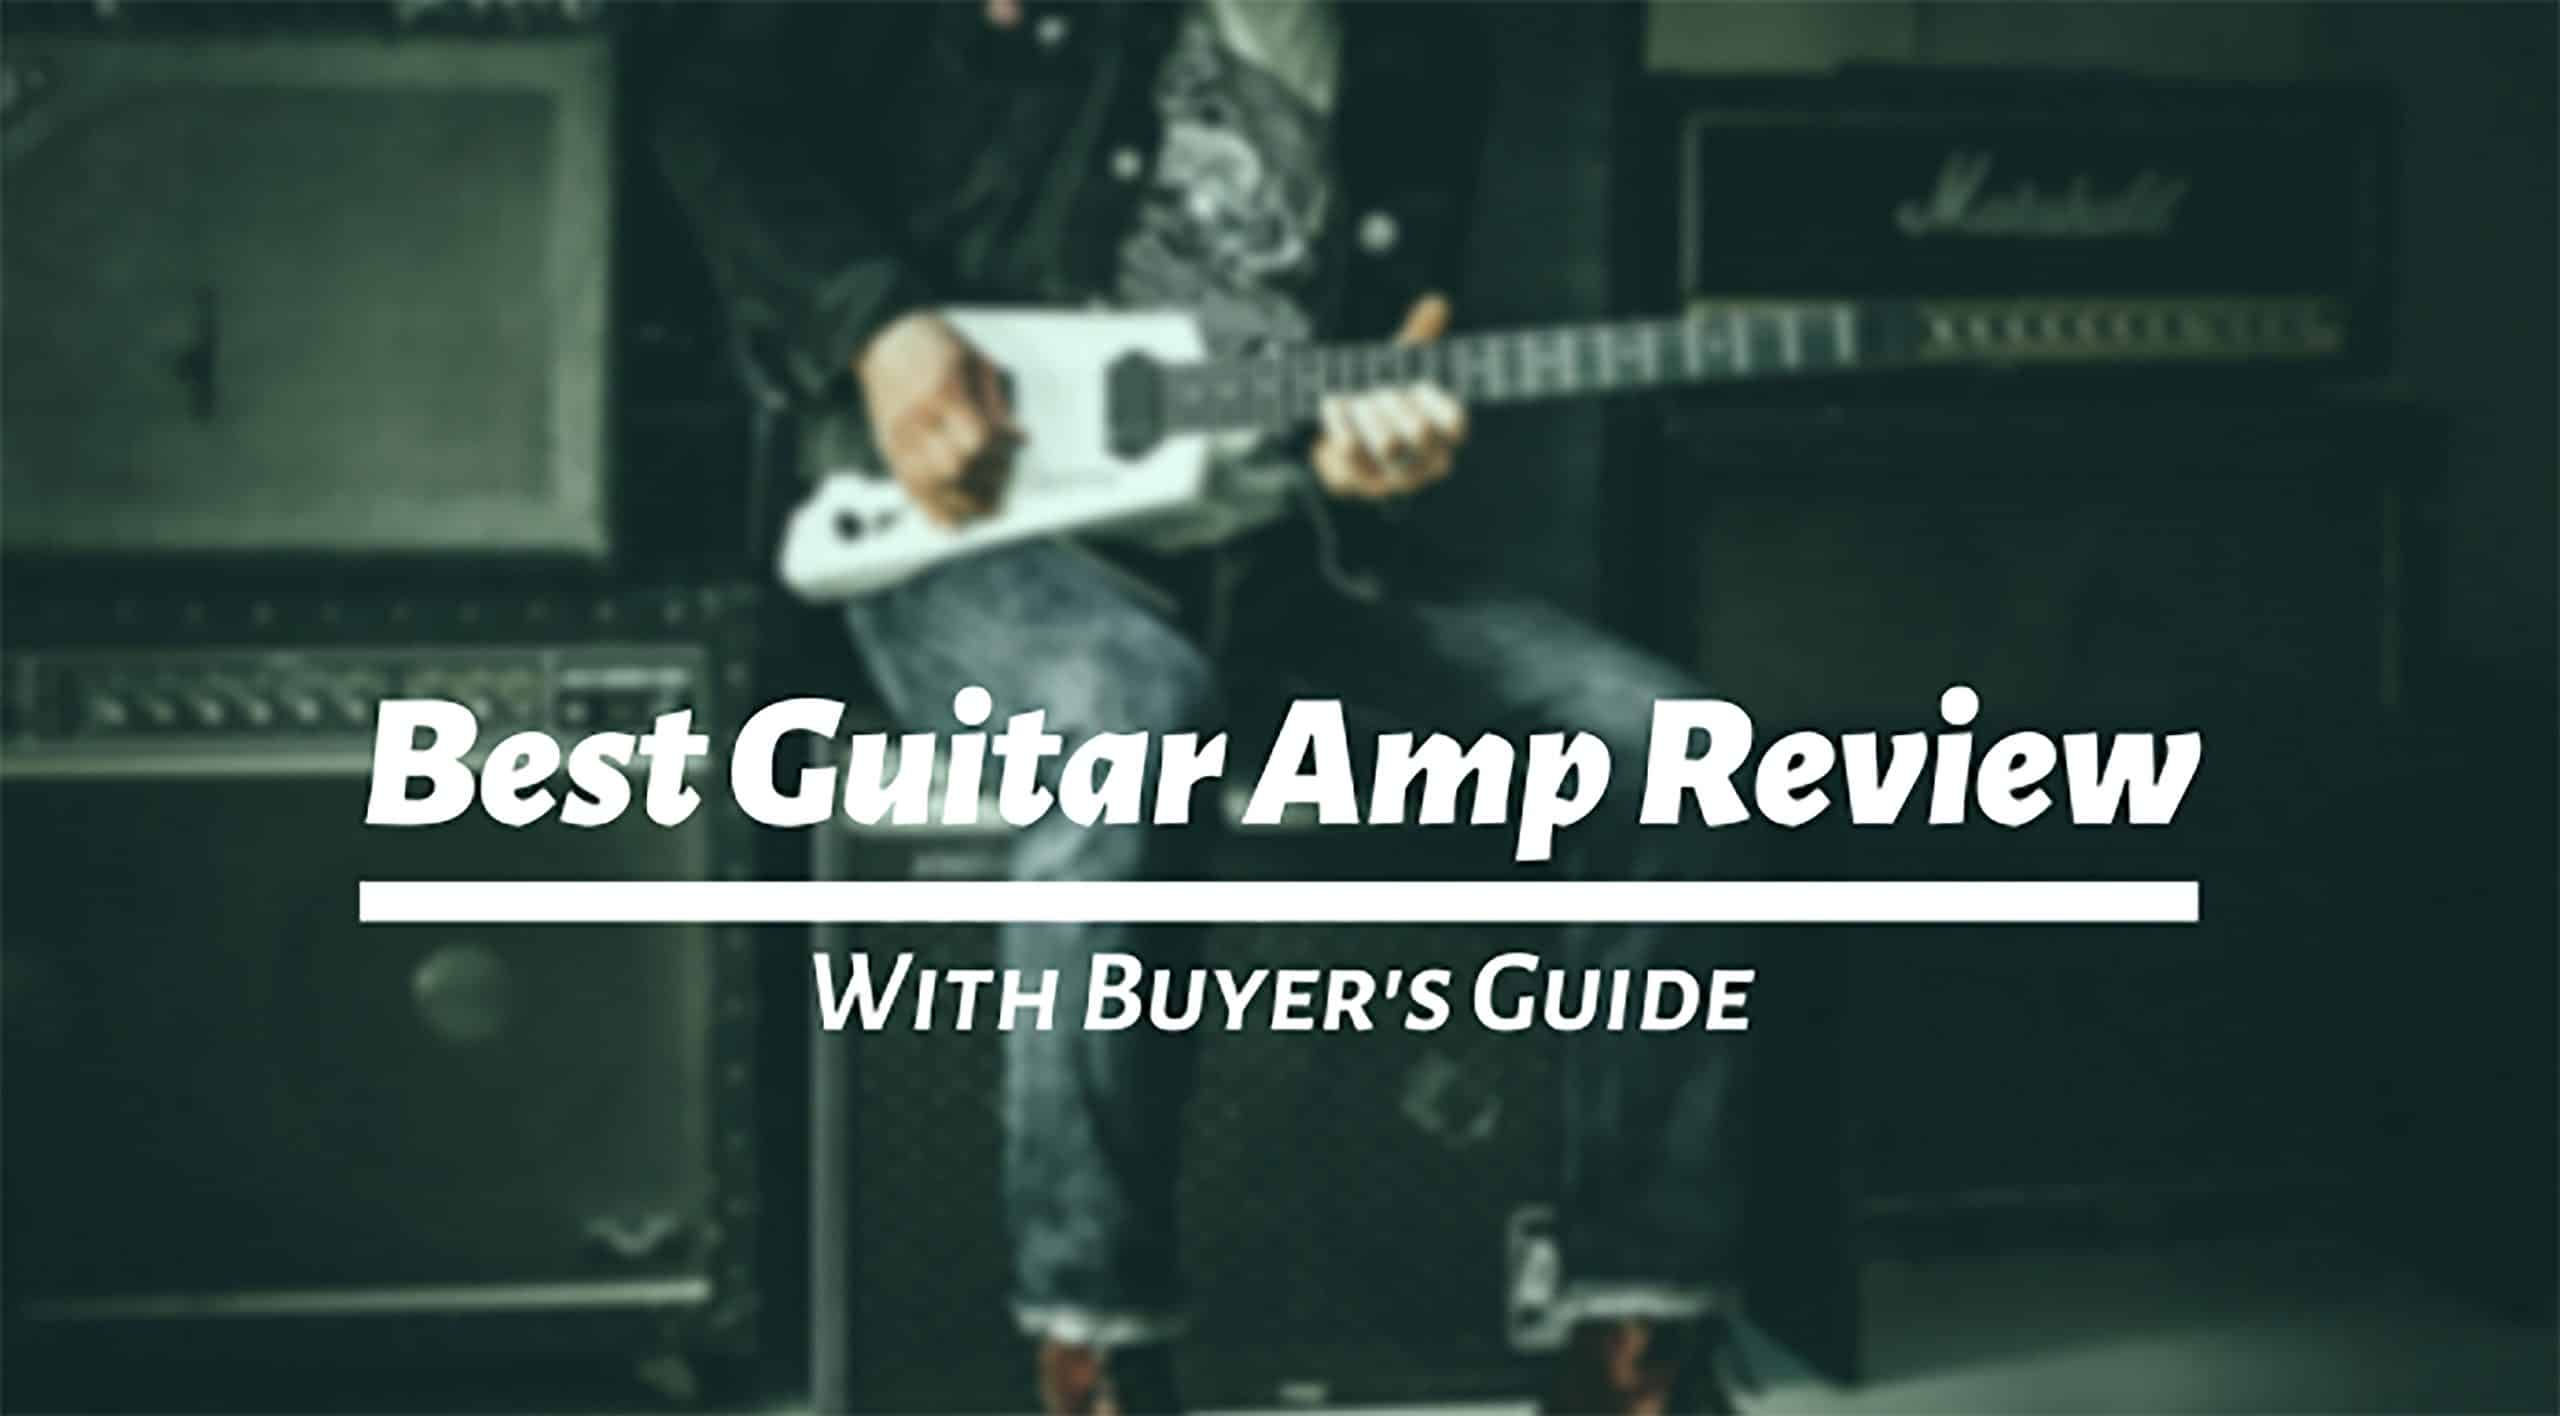 Best Guitar Amp Review